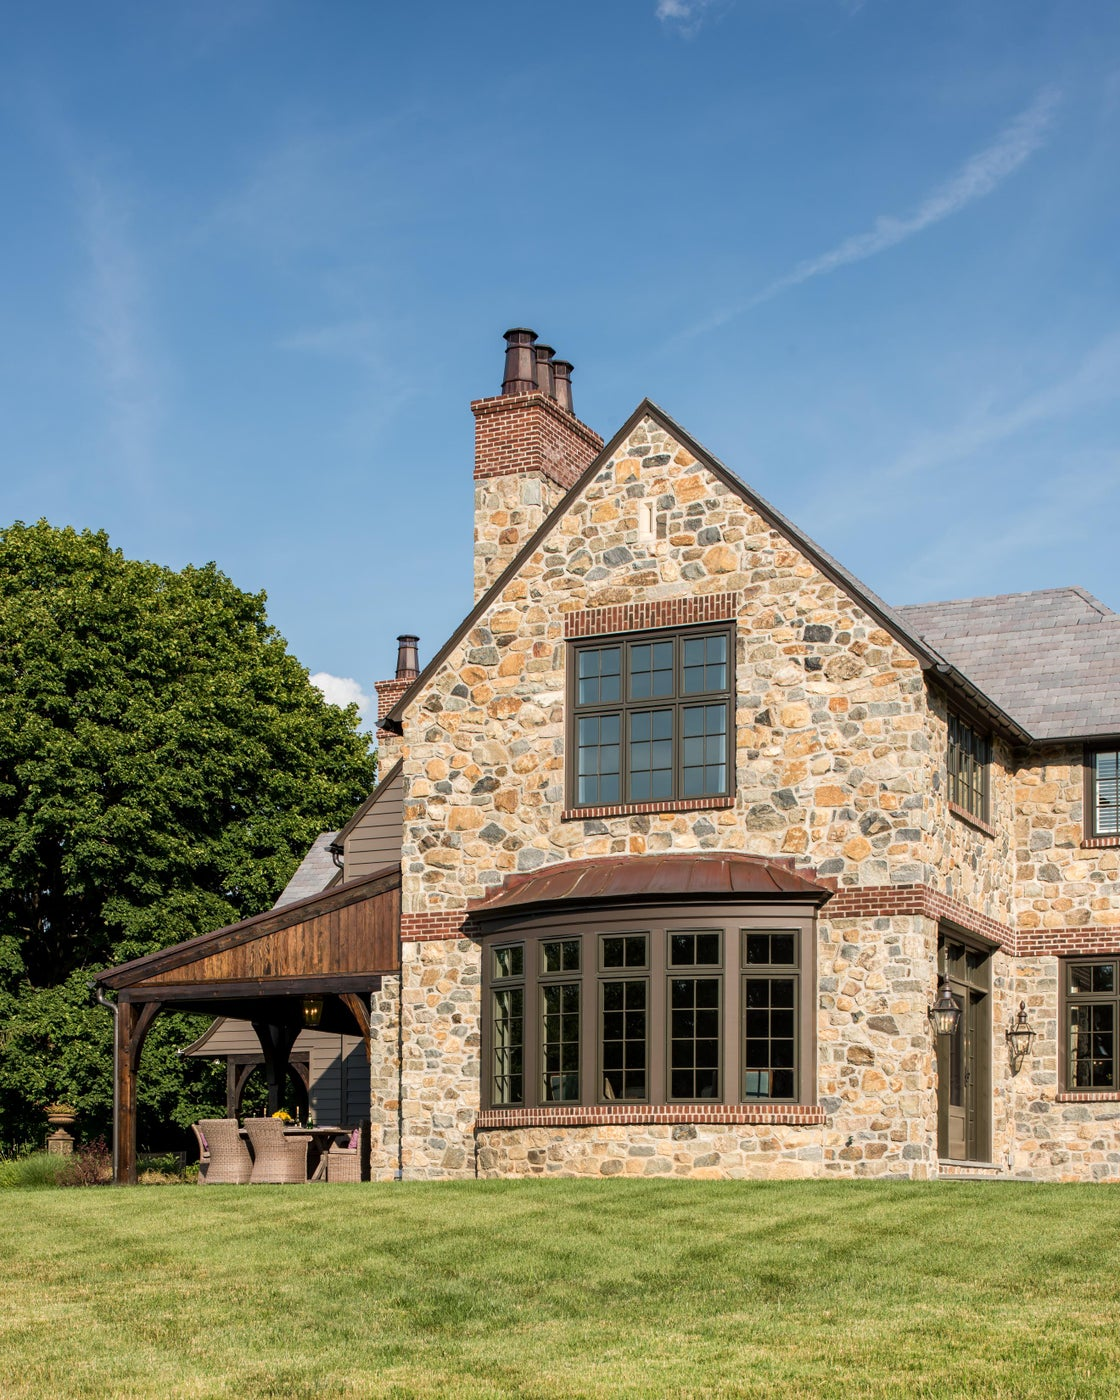 English Country House with round bay window in Greenville, Delaware